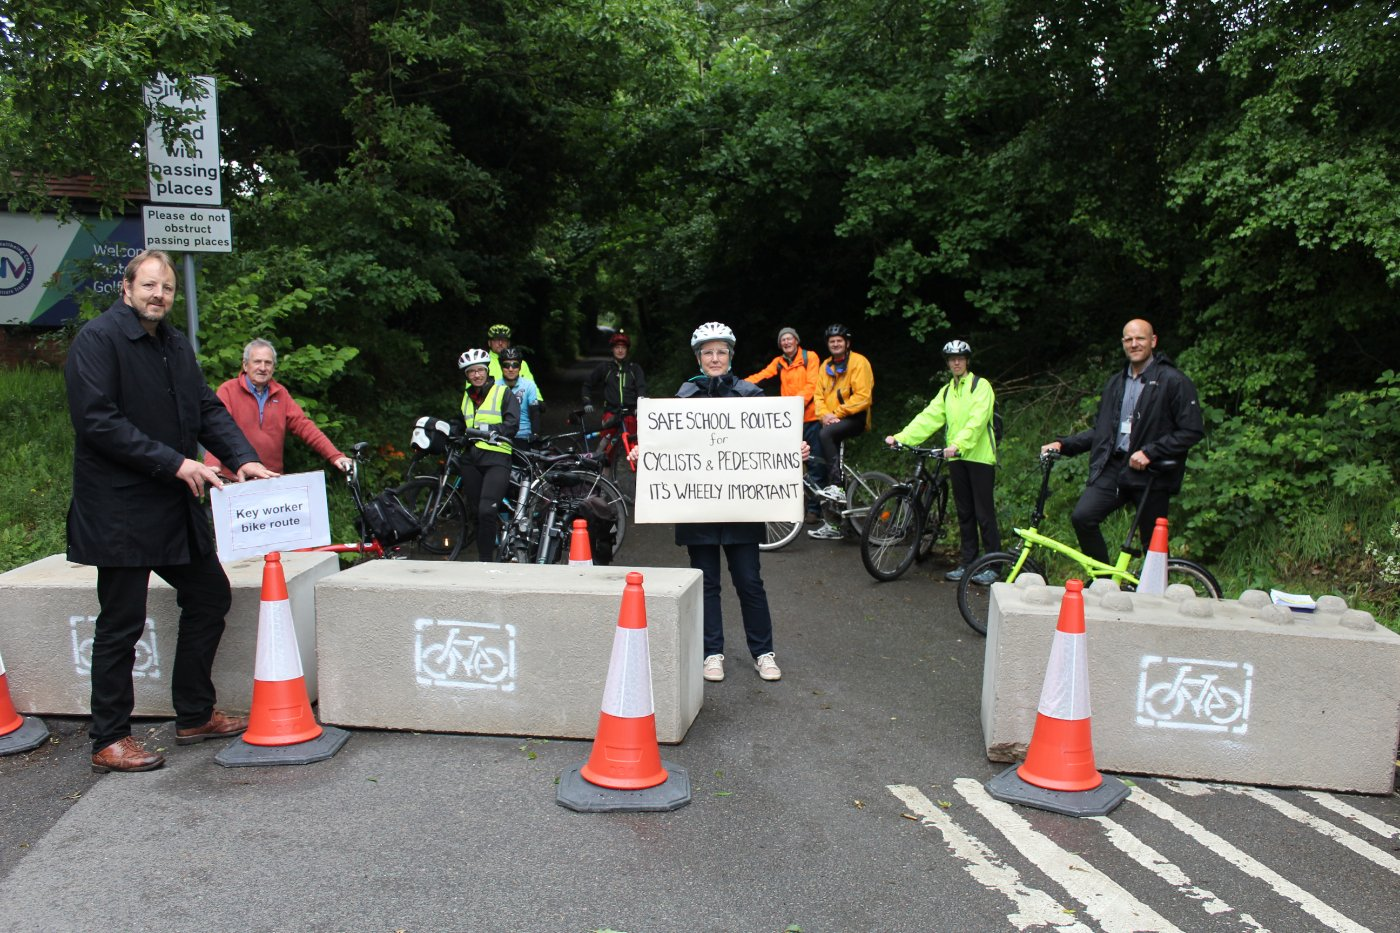 Crow Lane Closure Improves Cycling for Chesterfield Royal Hospital Staff